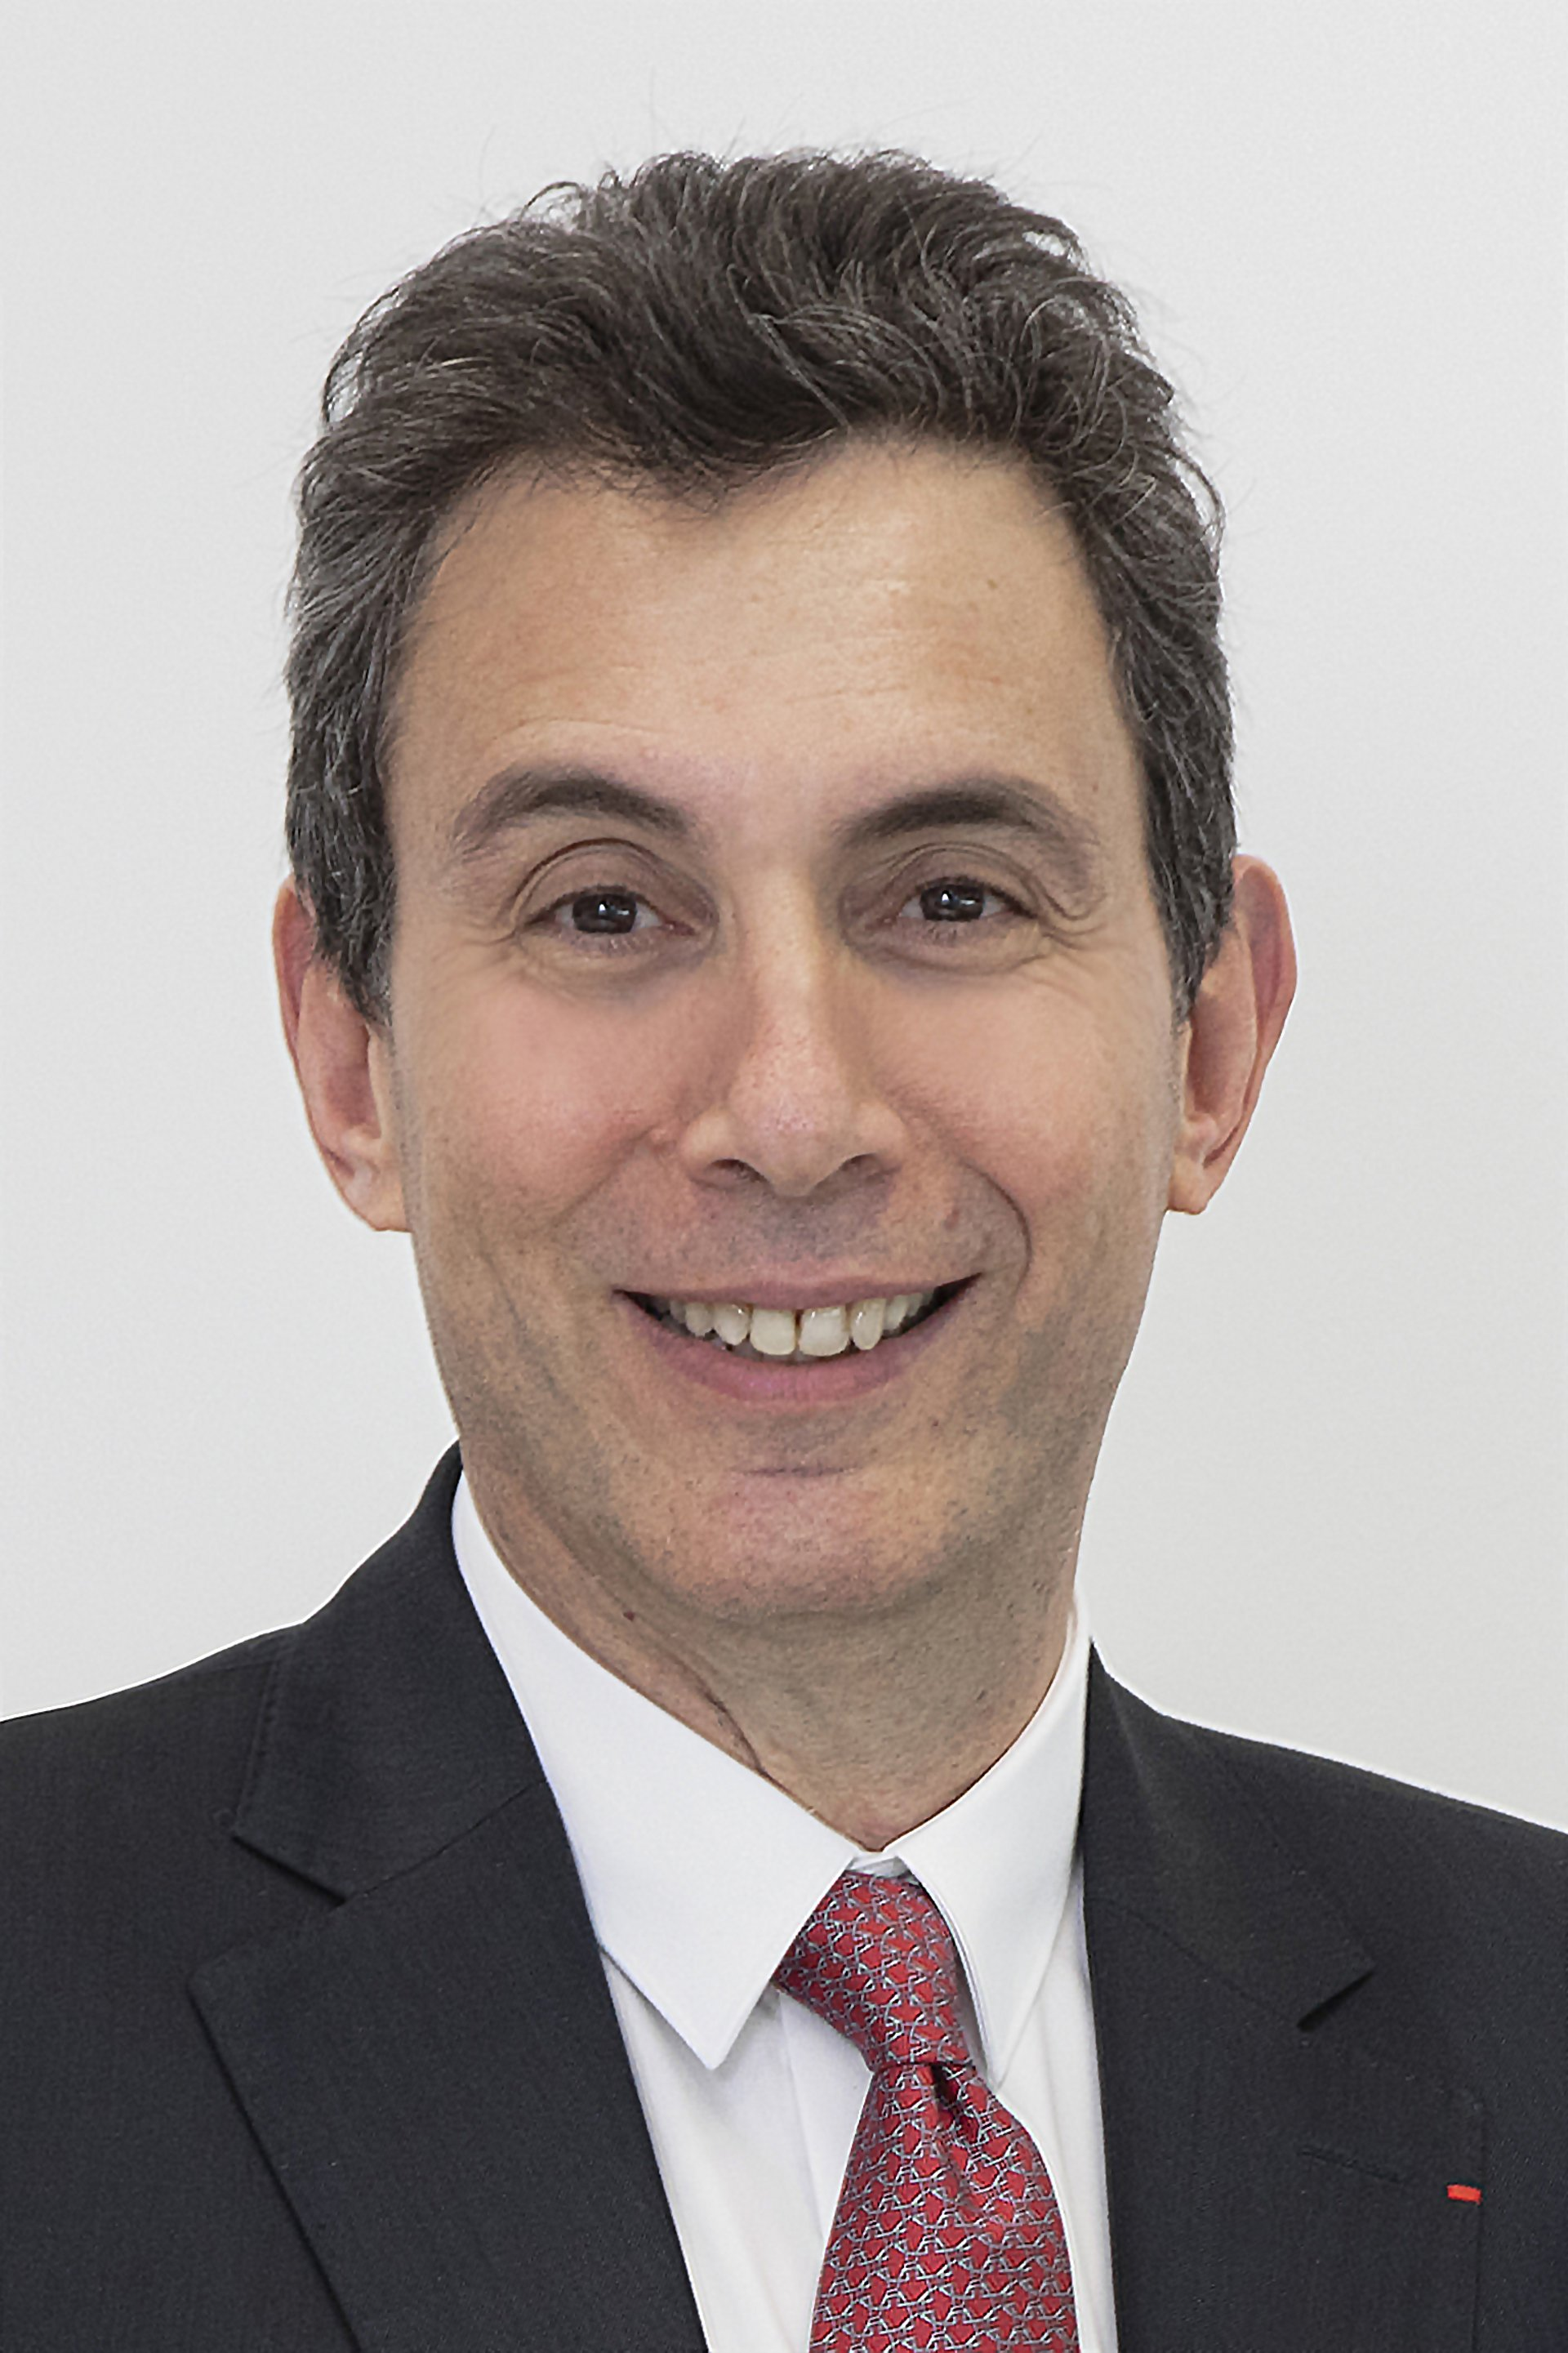 Jean--Marc Nasr is Head of Space Systems within Airbus Defence and Space, President of Airbus Defence and Space SAS appointed 1st June 2019.